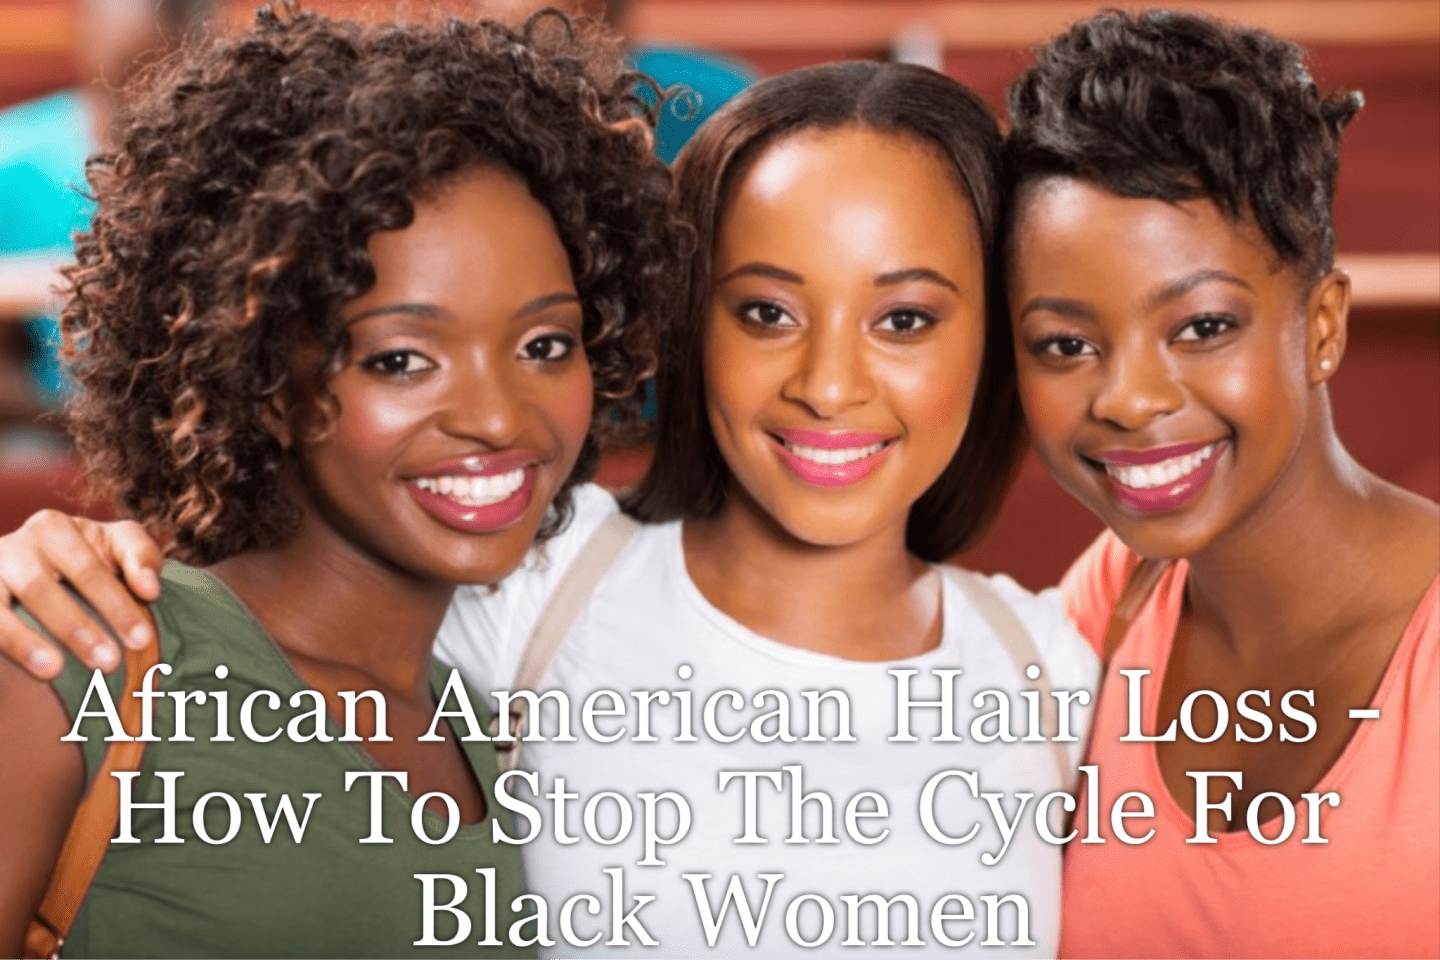 African American Hair Loss - How To Stop The Cycle For Black Women as this problem continues to grow and we need address it head-on. Here's what to do.